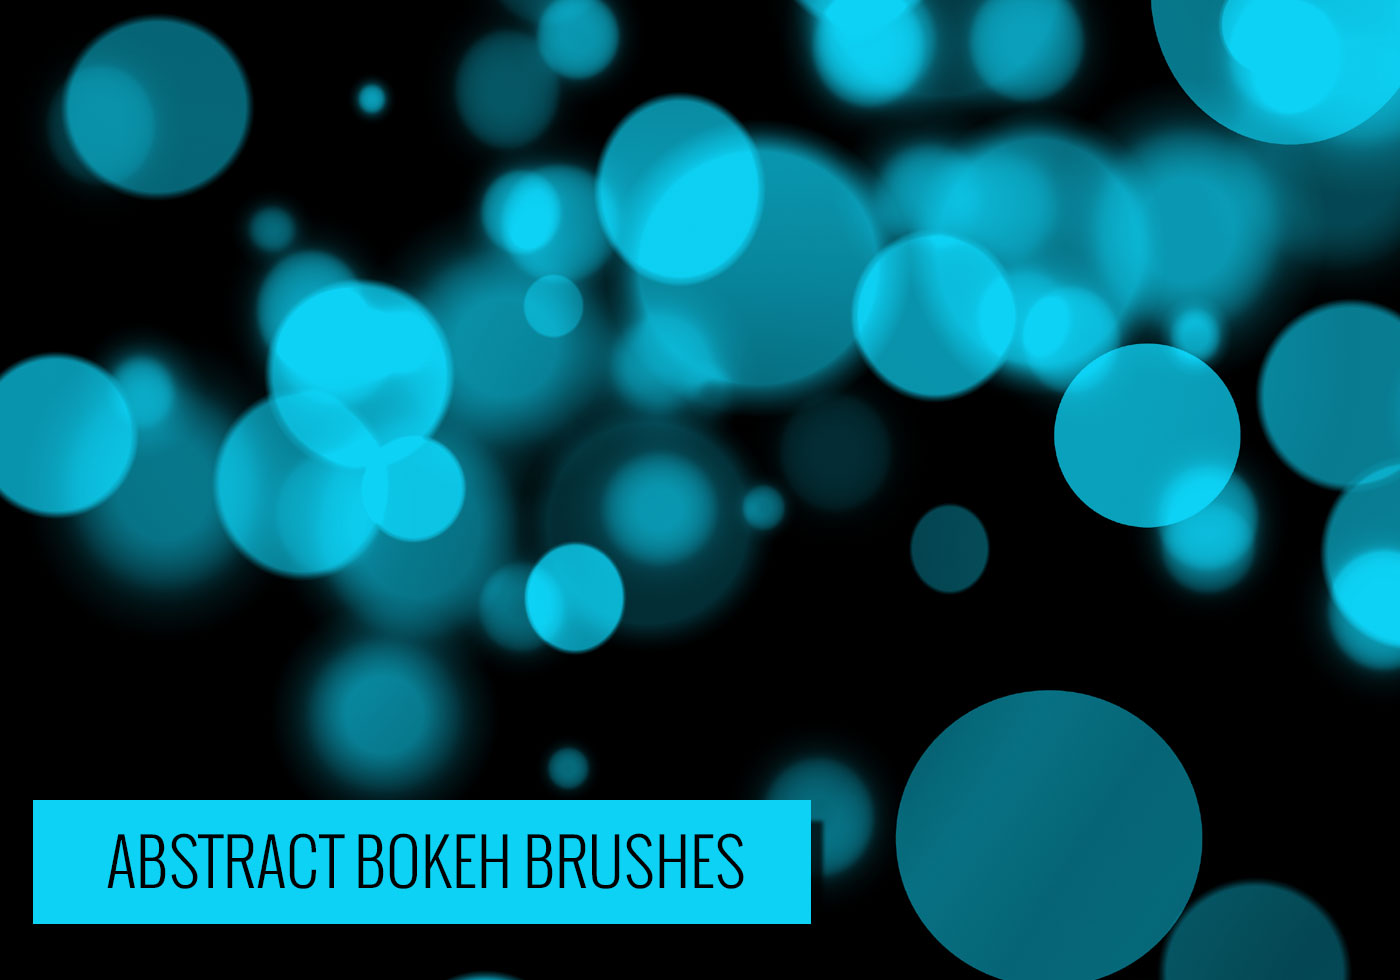 24 Abstract Bokeh Brushes - Free Photoshop Brushes at ...